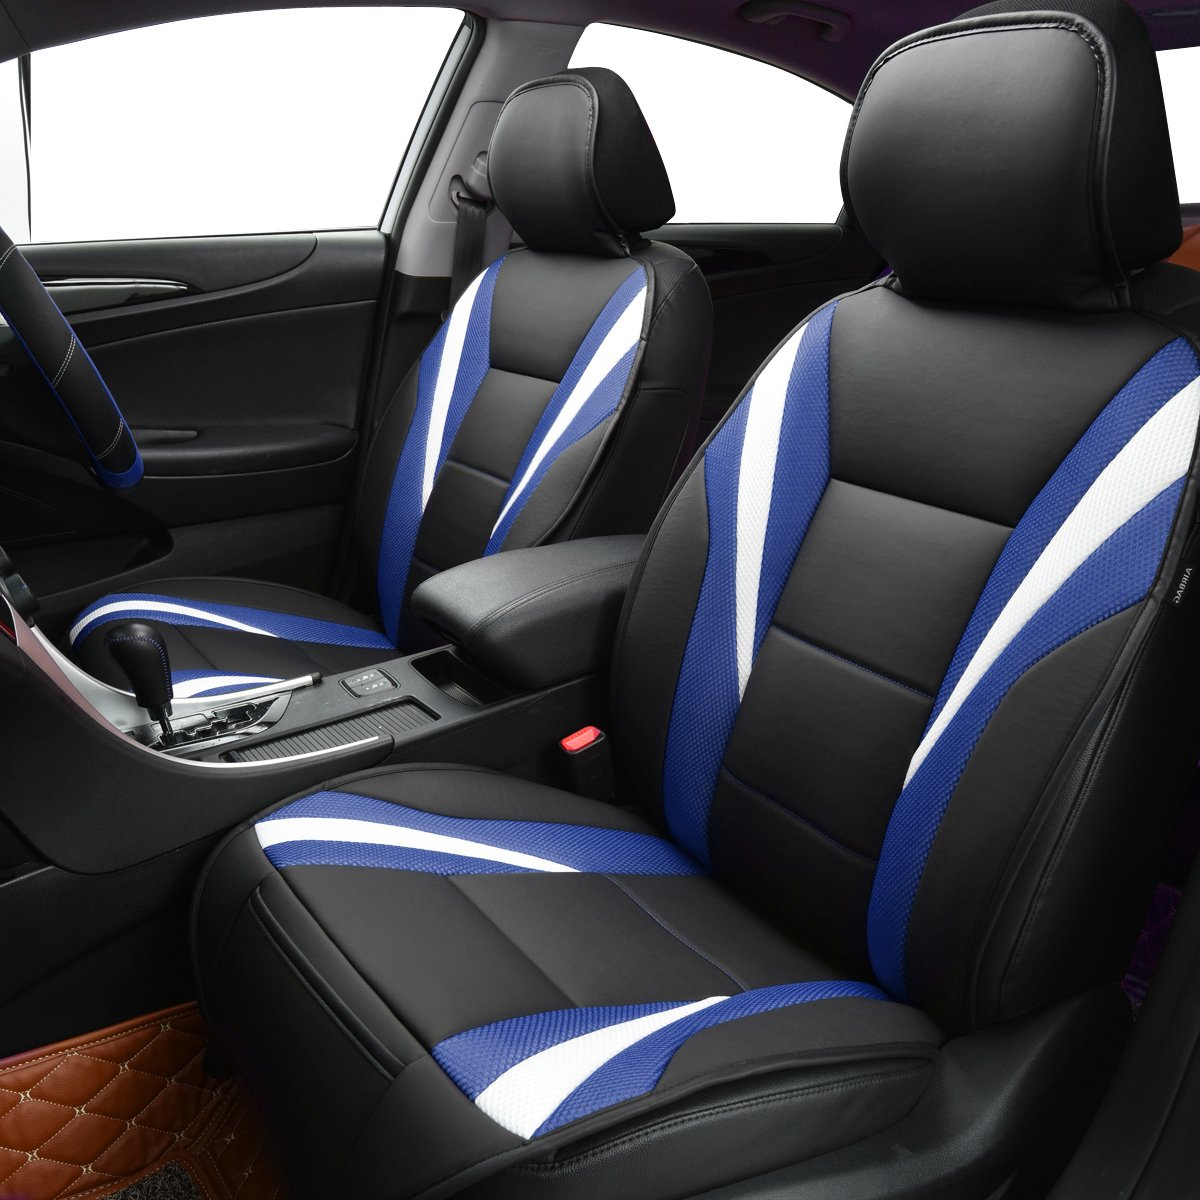 CAR PASS Delux Sideless Universal Fit Car Seat Cover FOR 1 SET With carriage Bag Black And Red Black and red color NEW ARRIVAL